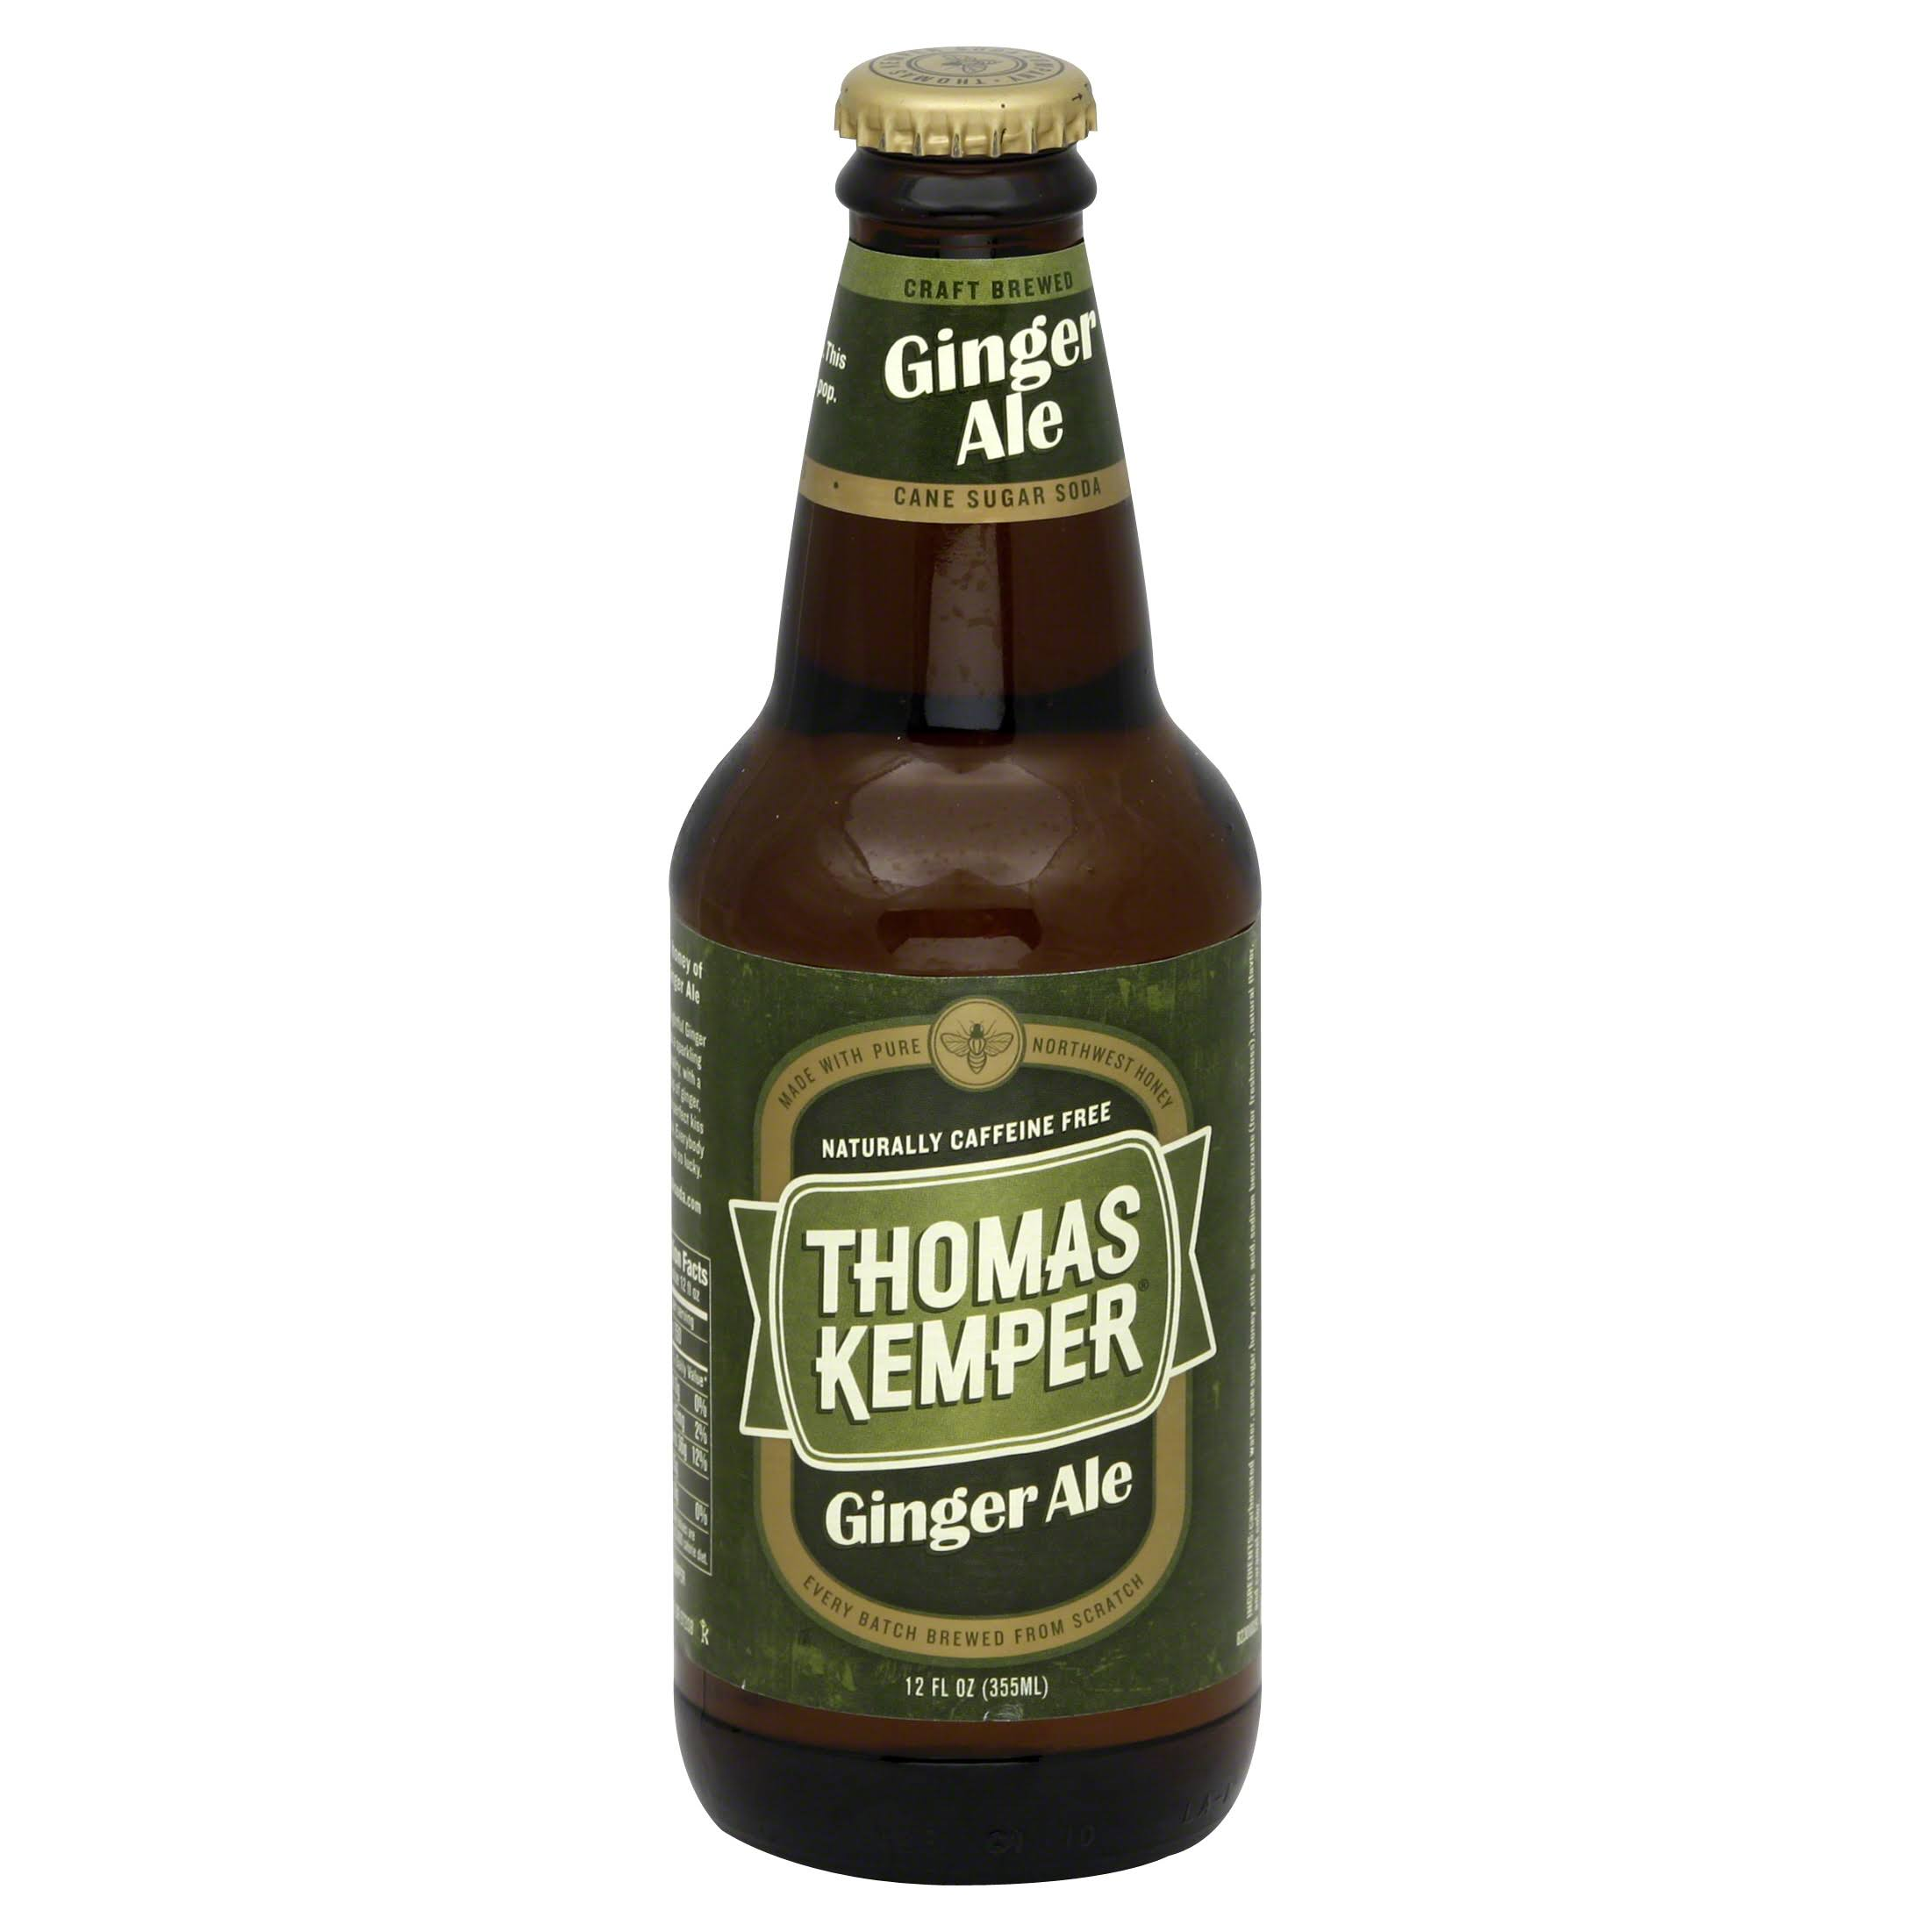 Thomas Kemper Ginger Ale - 12 fl oz